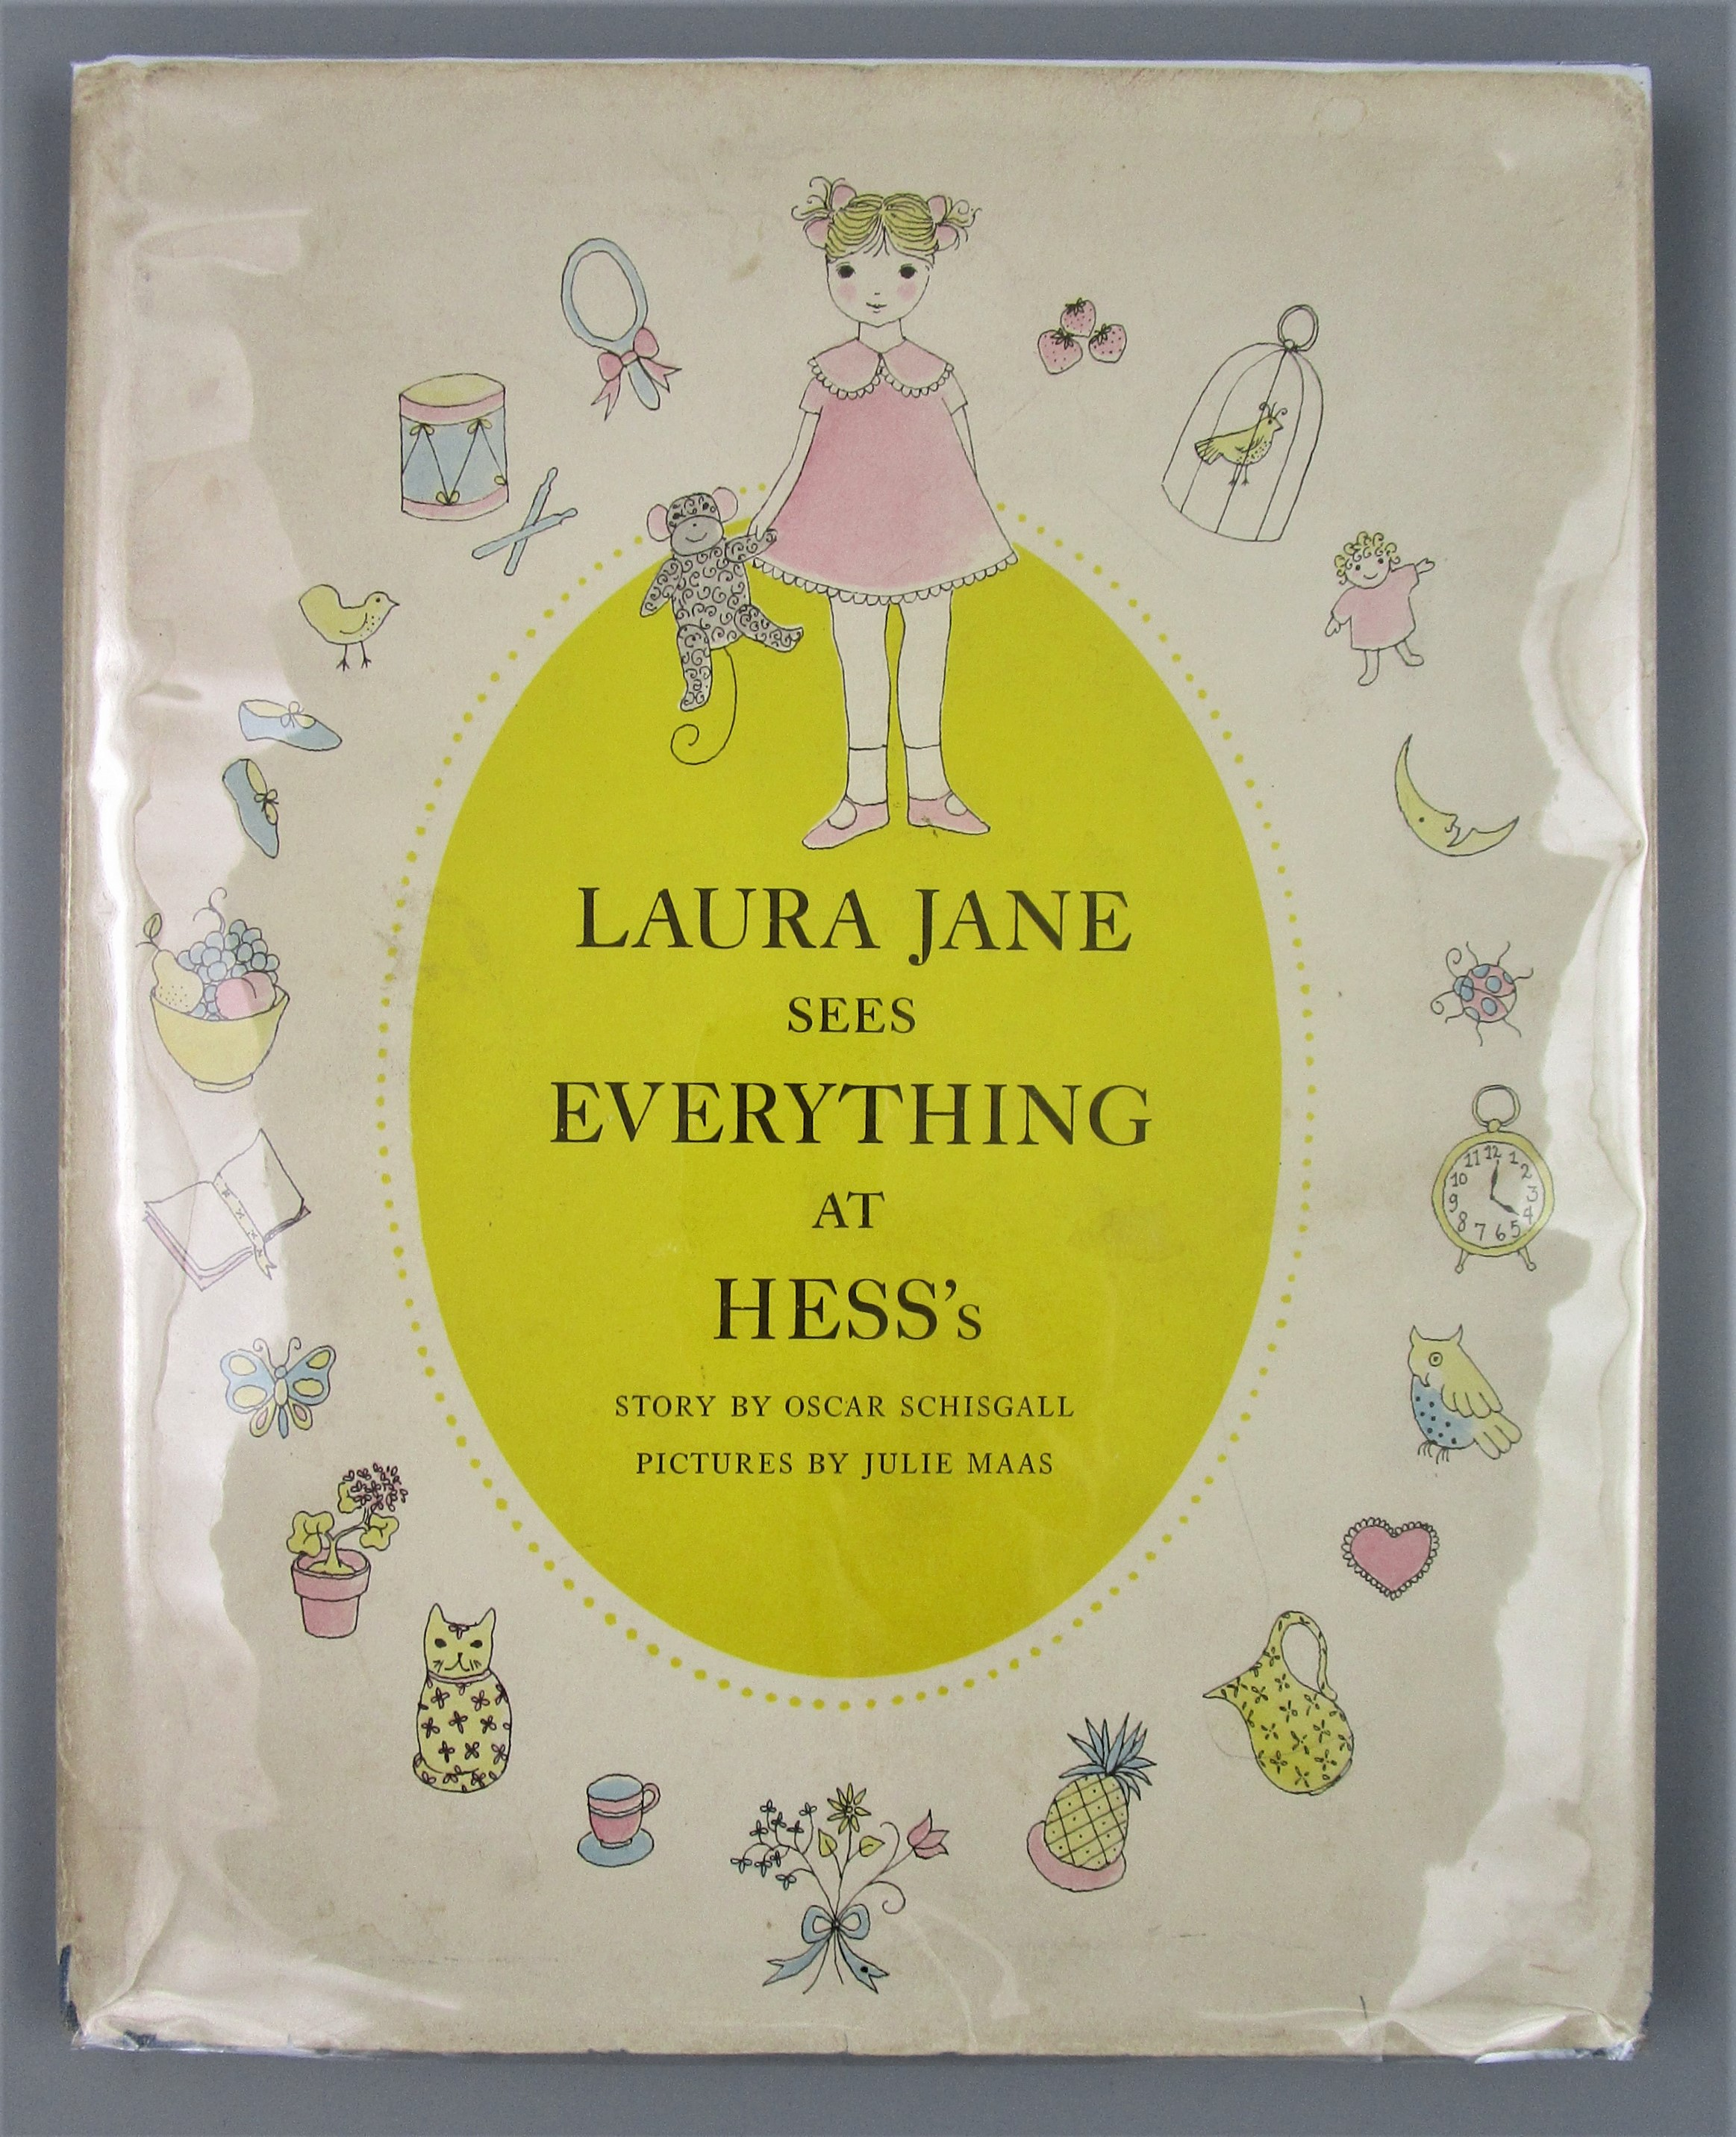 LAURA JANE SEES EVERYTHING AT HESS'S, by O. Schisgall & J. Maas - 1957 [1st Ed]